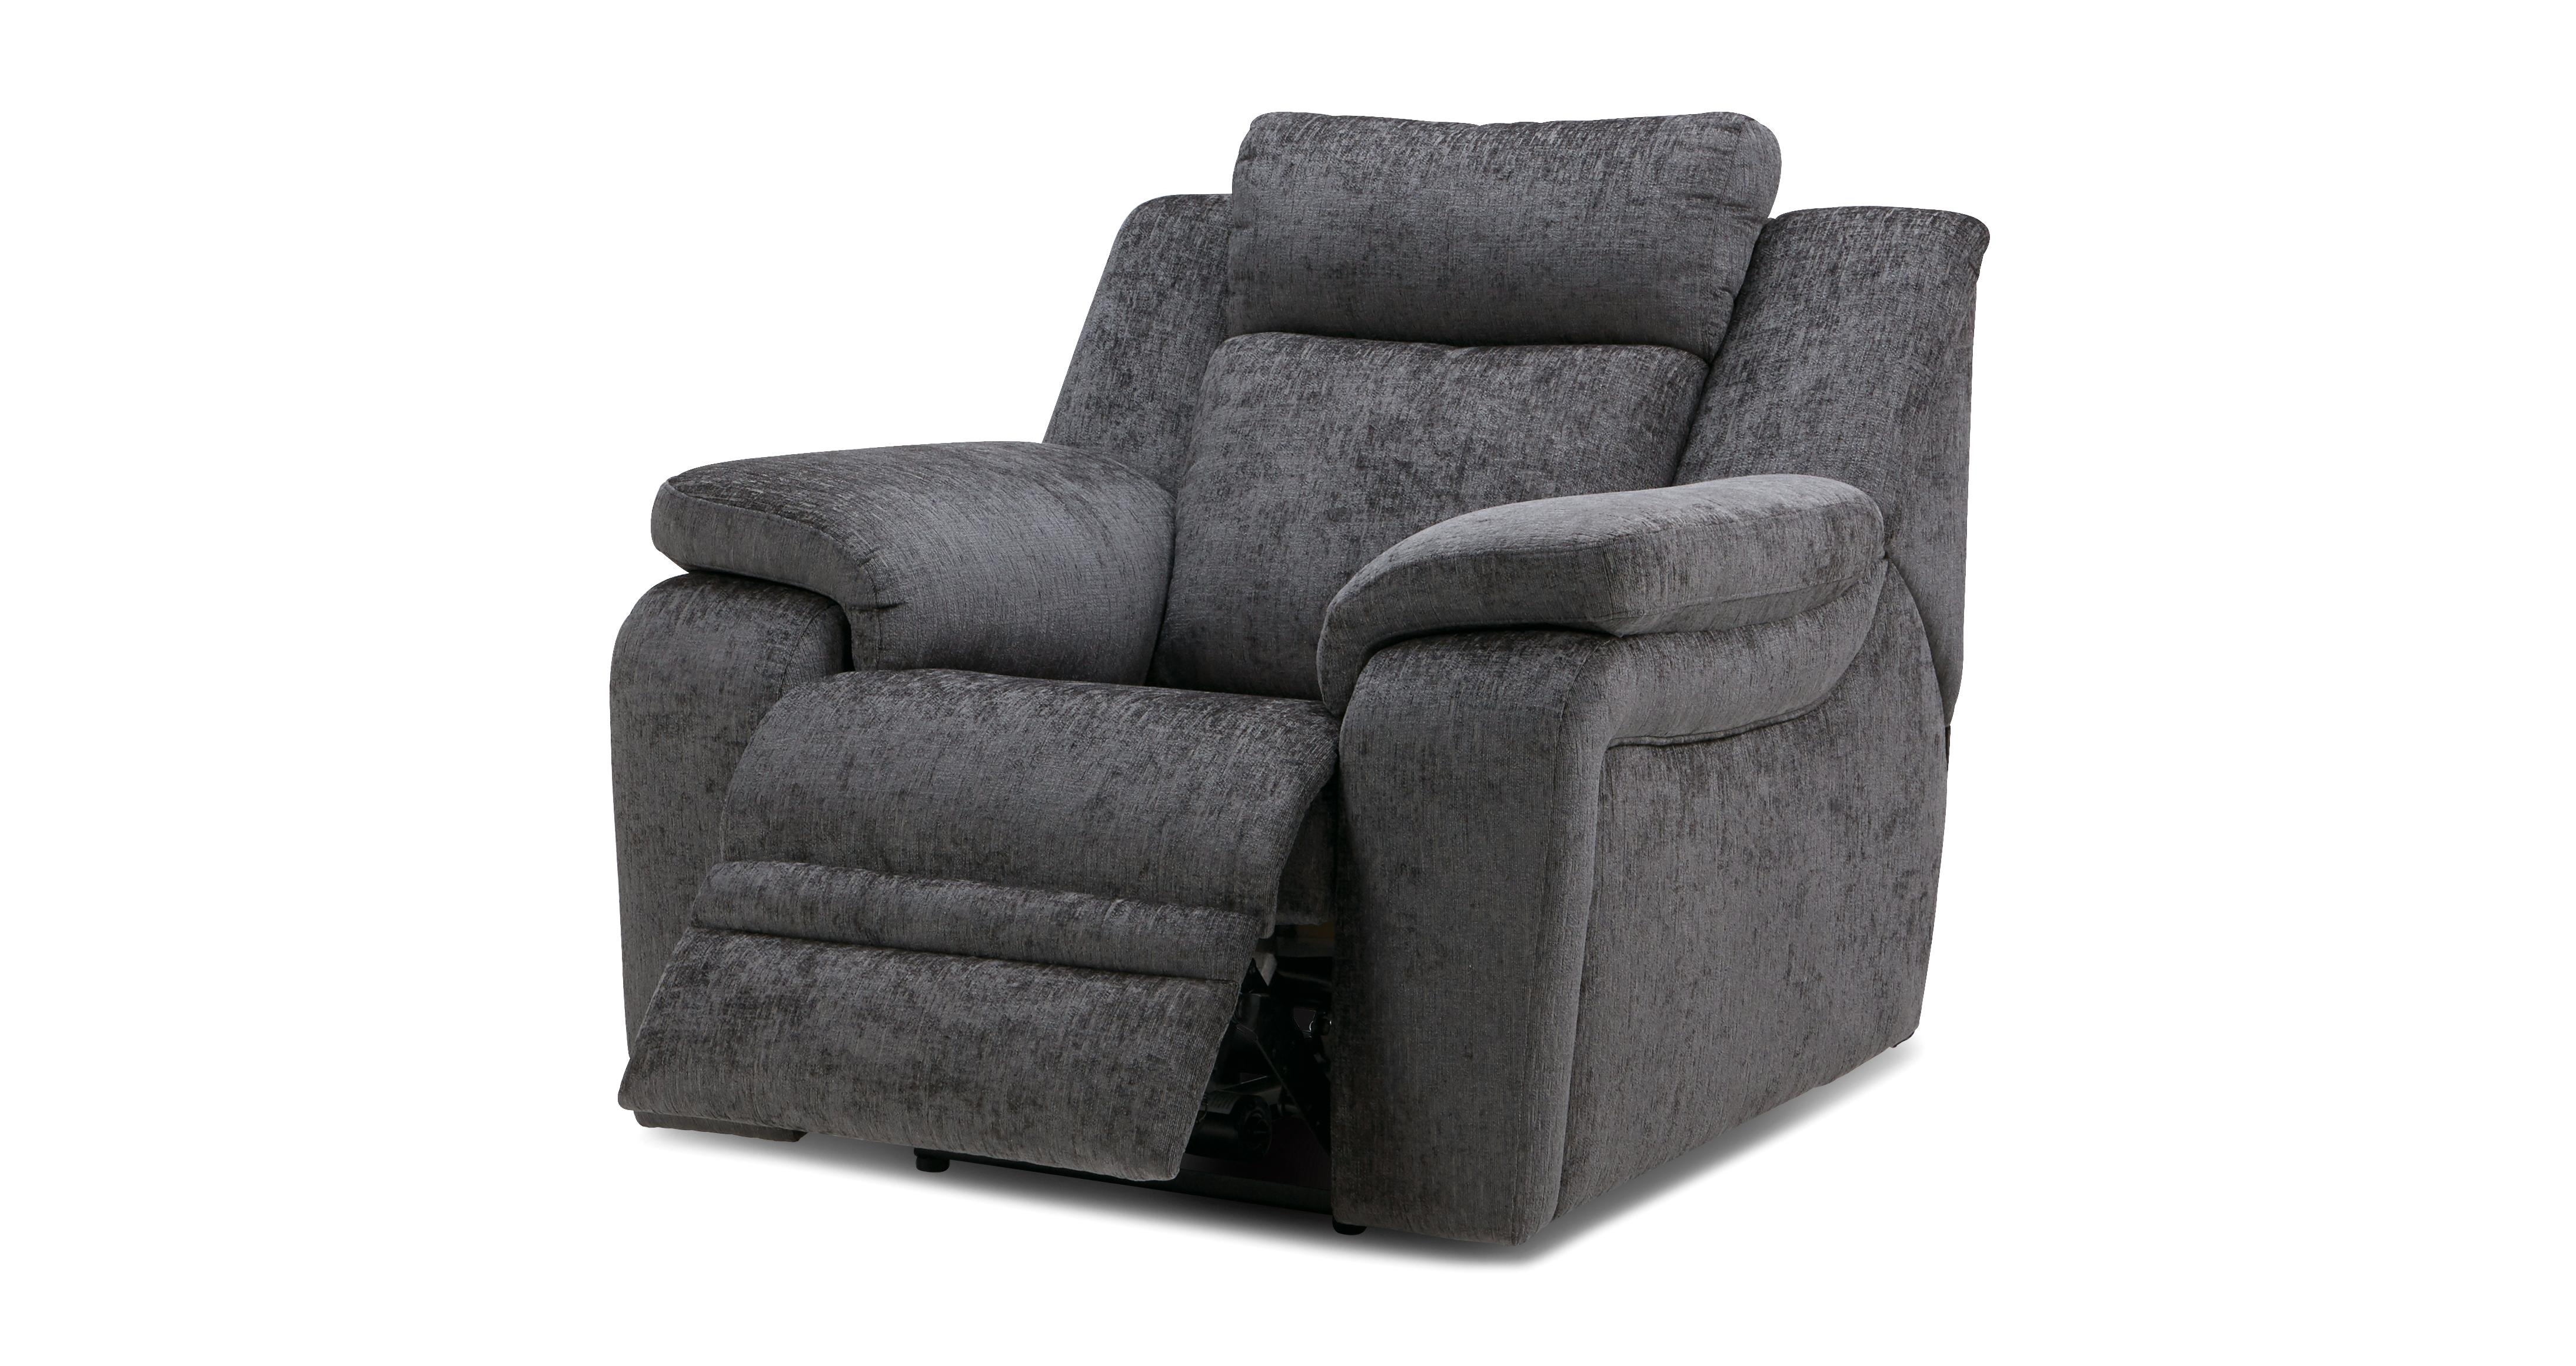 dfs navona sofa reviews innovation beds australia recliner cable review home co